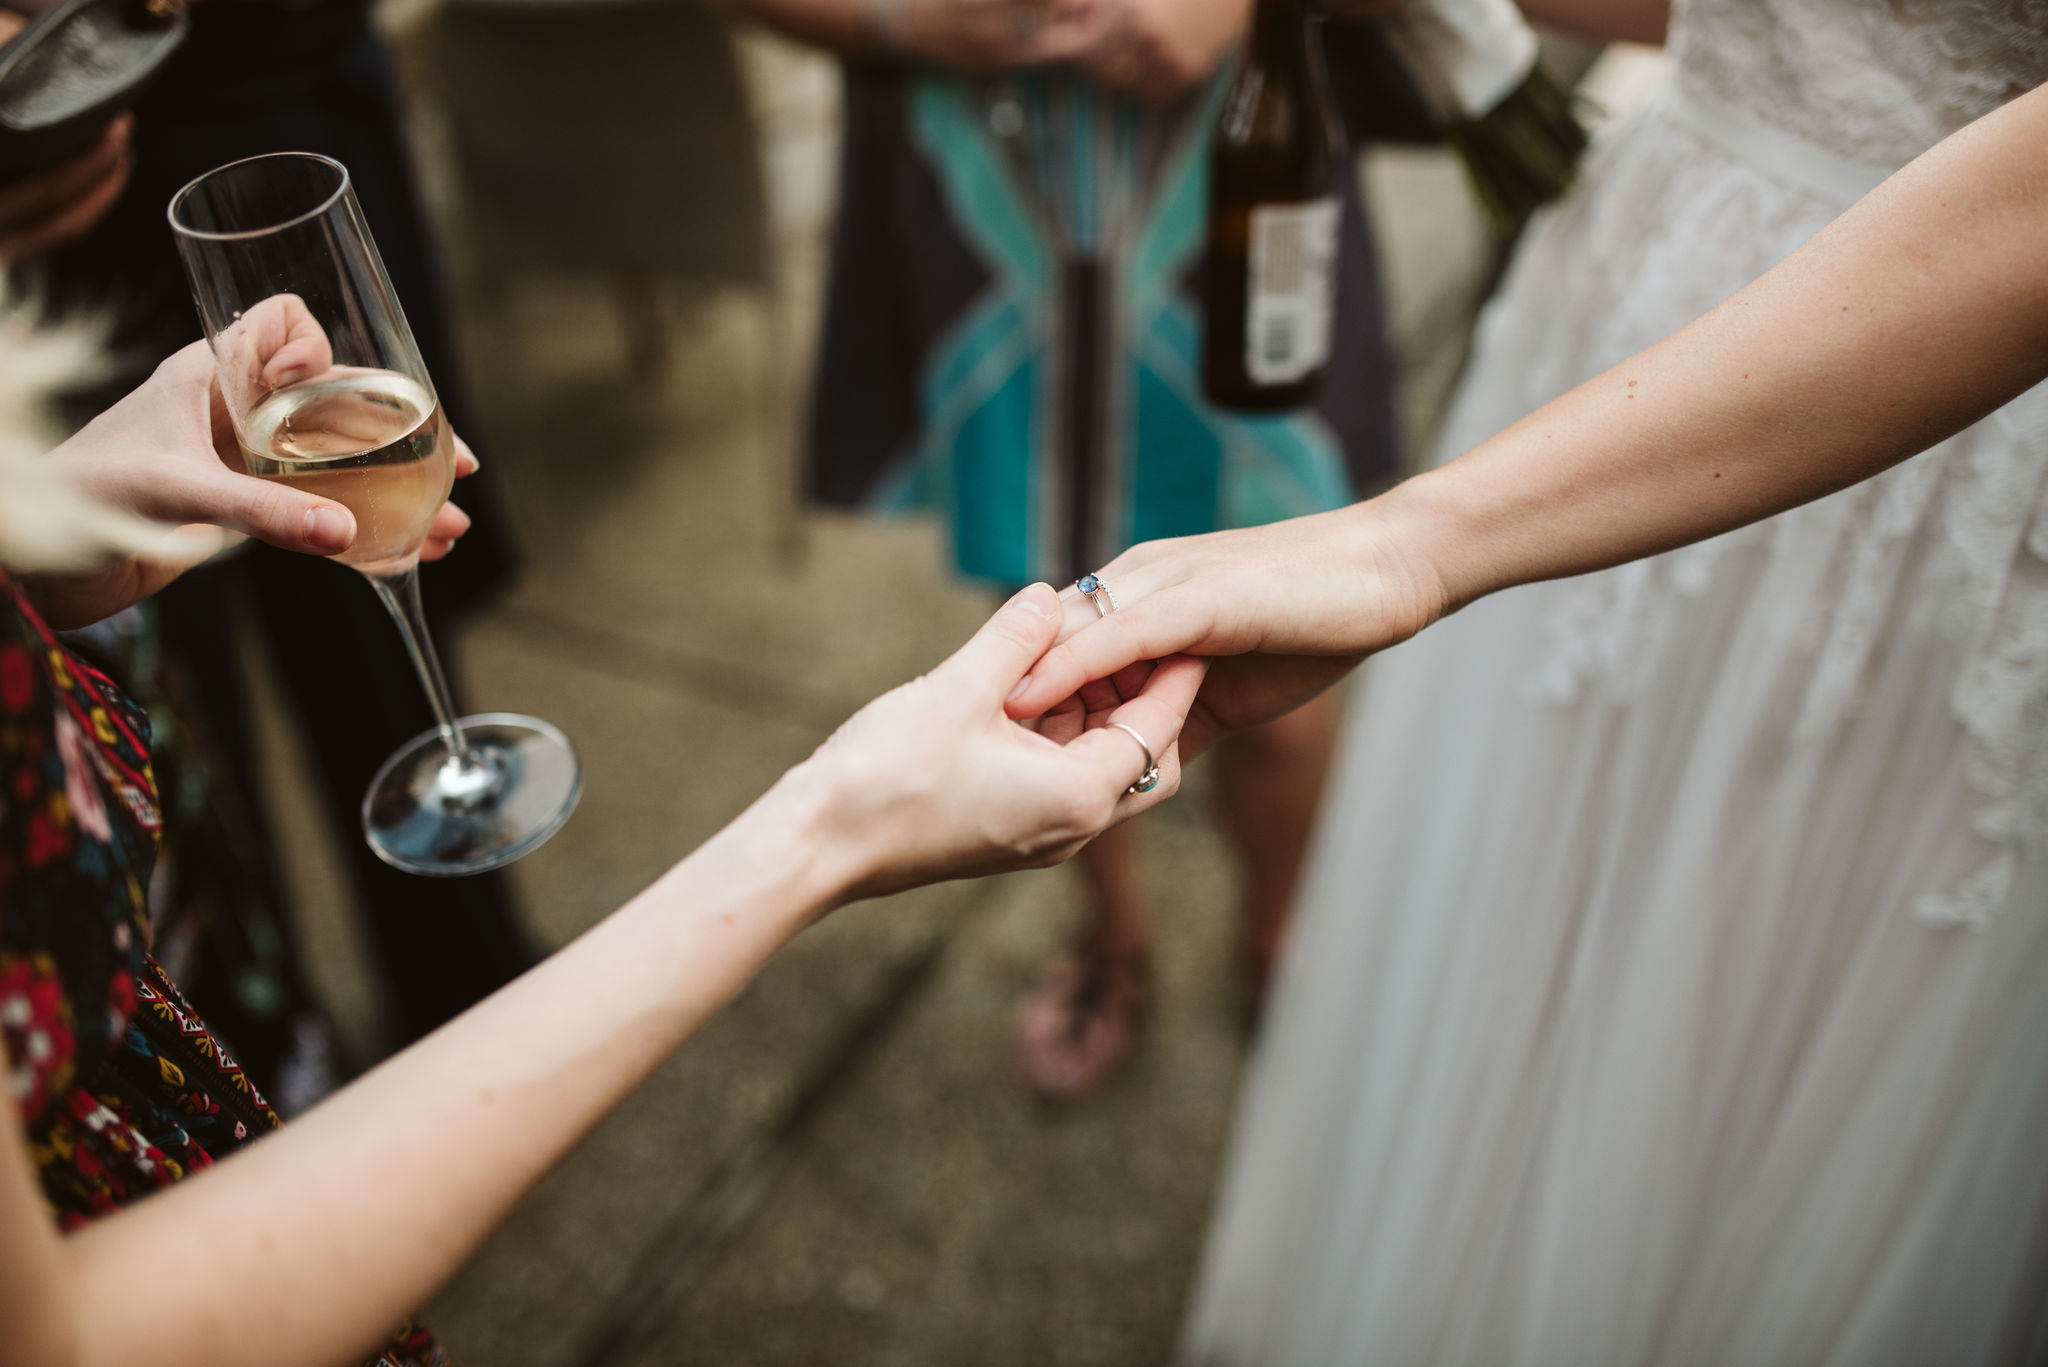 Phoenix Maryland, Baltimore Wedding Photographer, Eagle's Nest Country Club, Classic, Romantic, Spring, Bride Holding Hands with Friend, Wedding Guests Admiring Brilliant Earth Rings